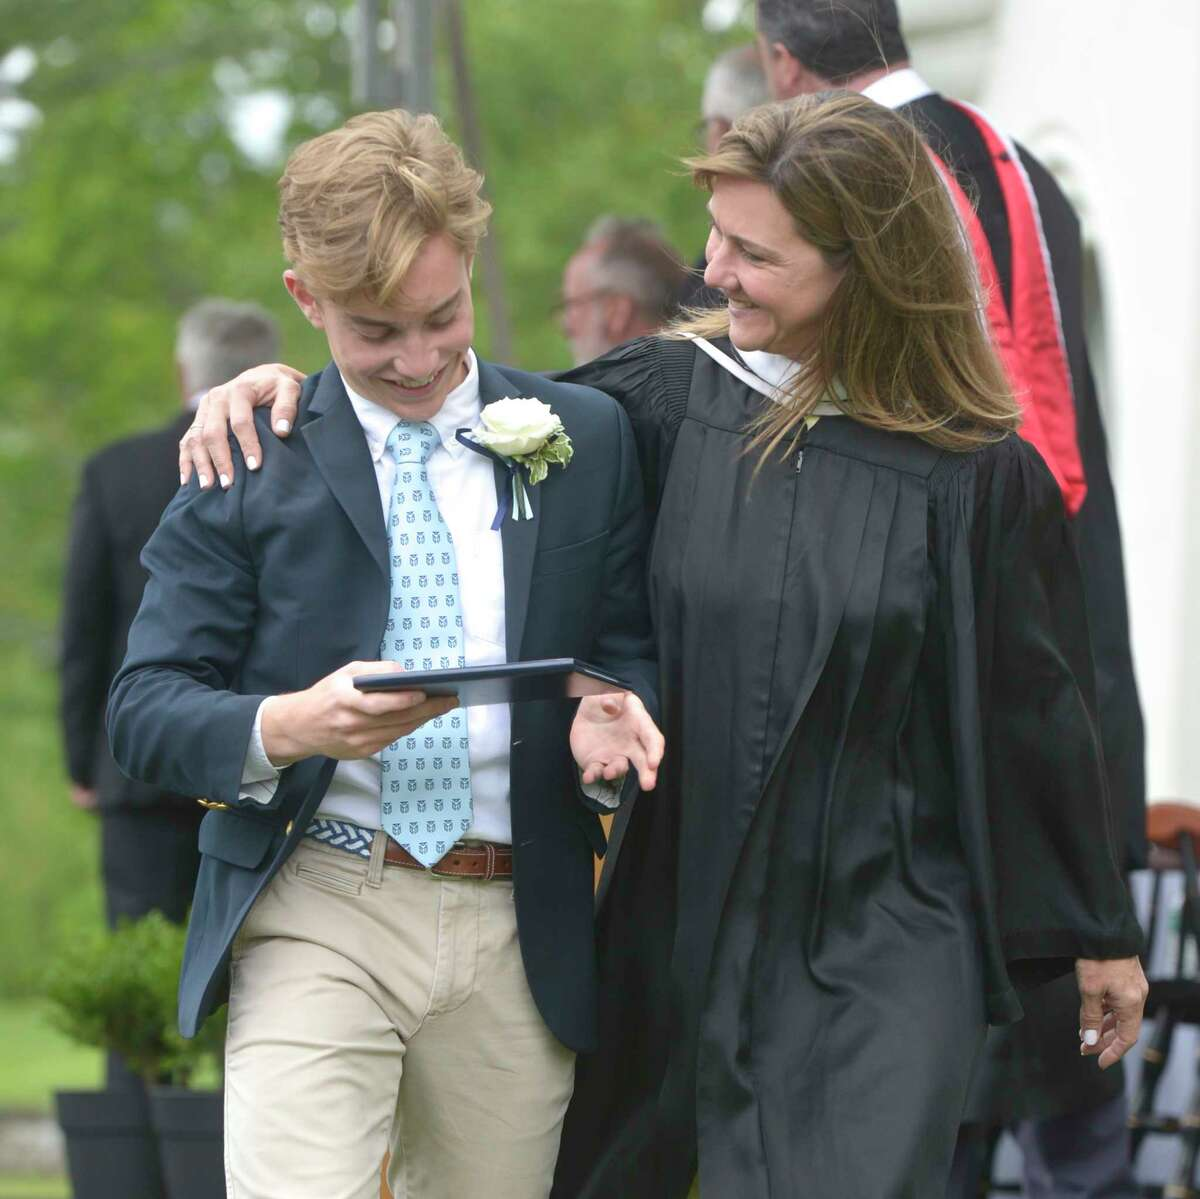 The One Hundred Second Commencement Exercises for Canterbury School, Friday morning, May 24, 2019, in New Milford, Conn.